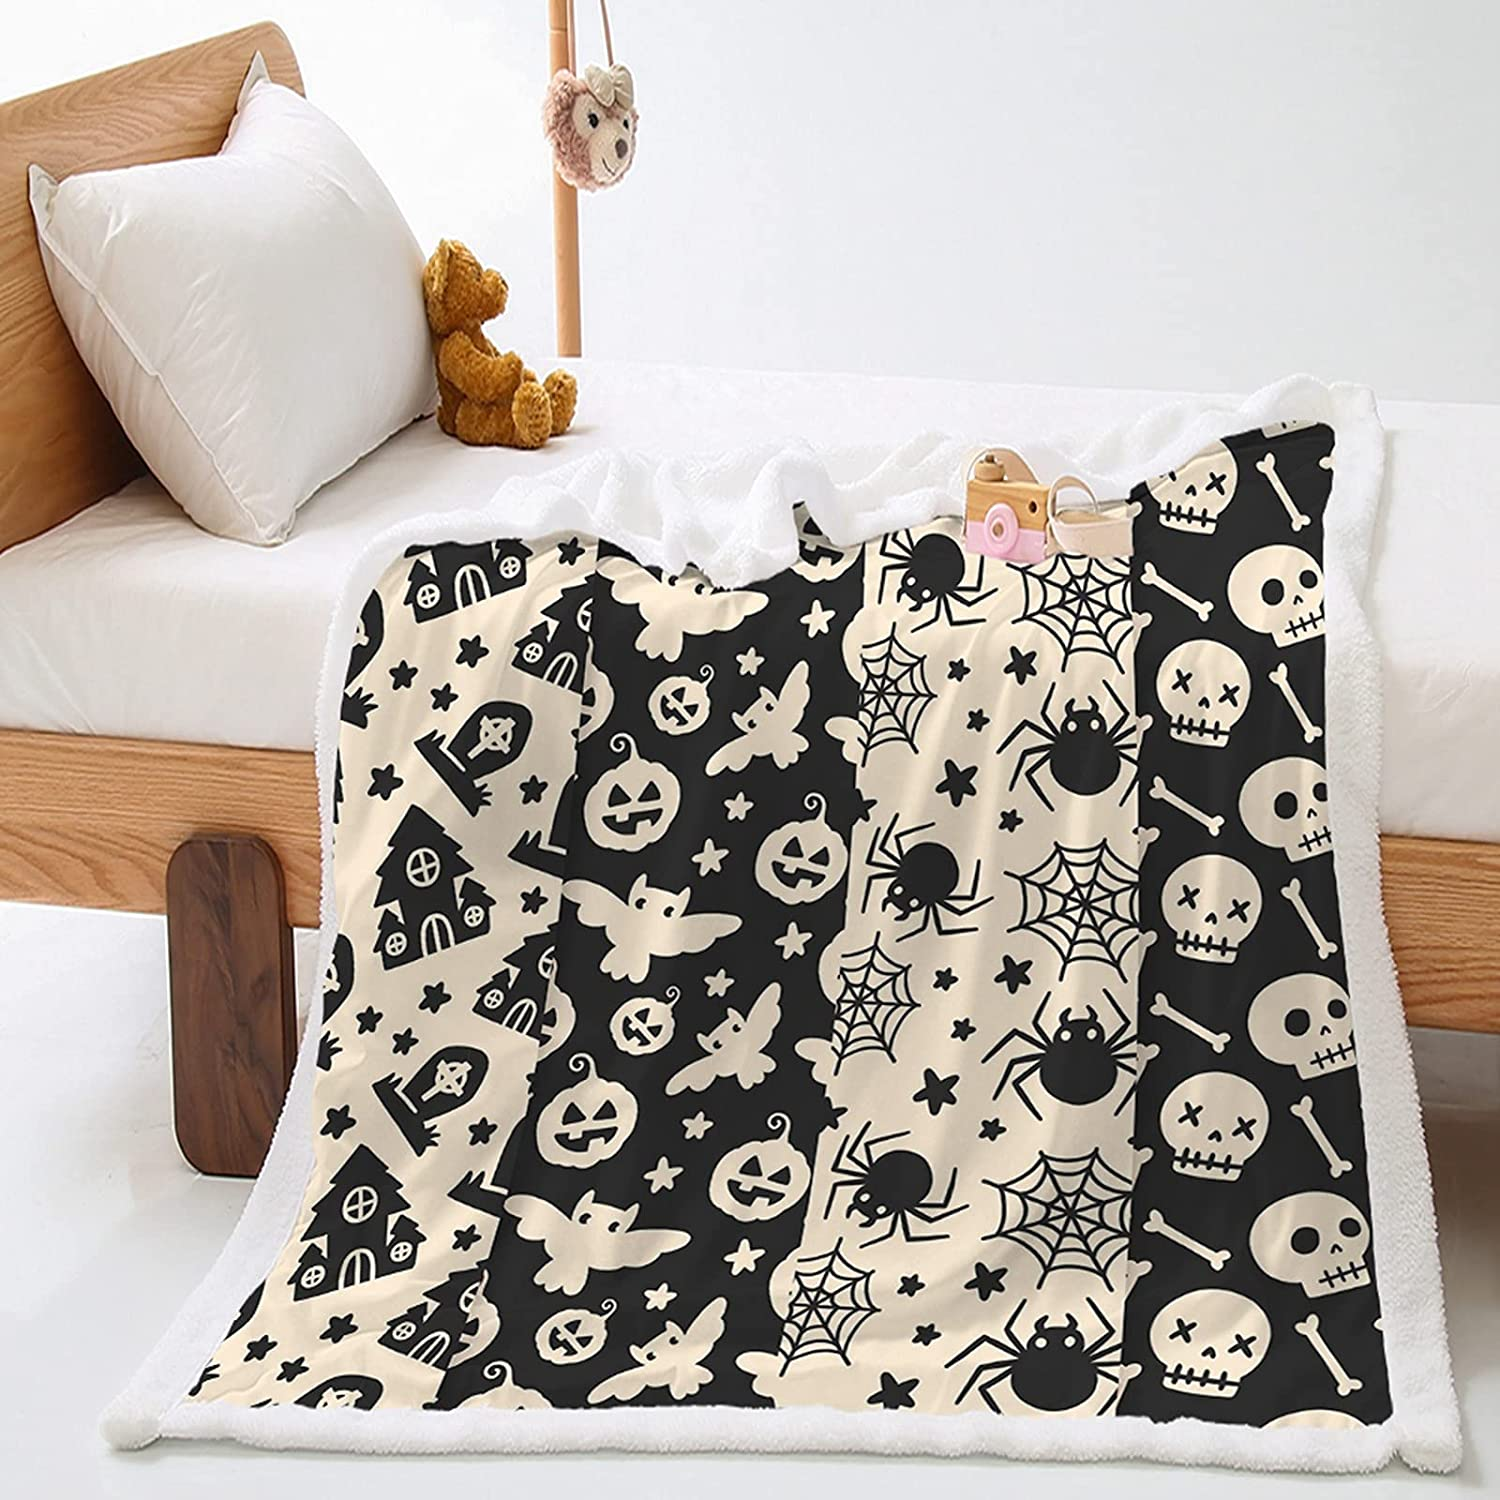 Guiihua Fashion Halloween Theme Blanket Bed Thicker Genuine Free Shipping Max 49% OFF Sheet Winter